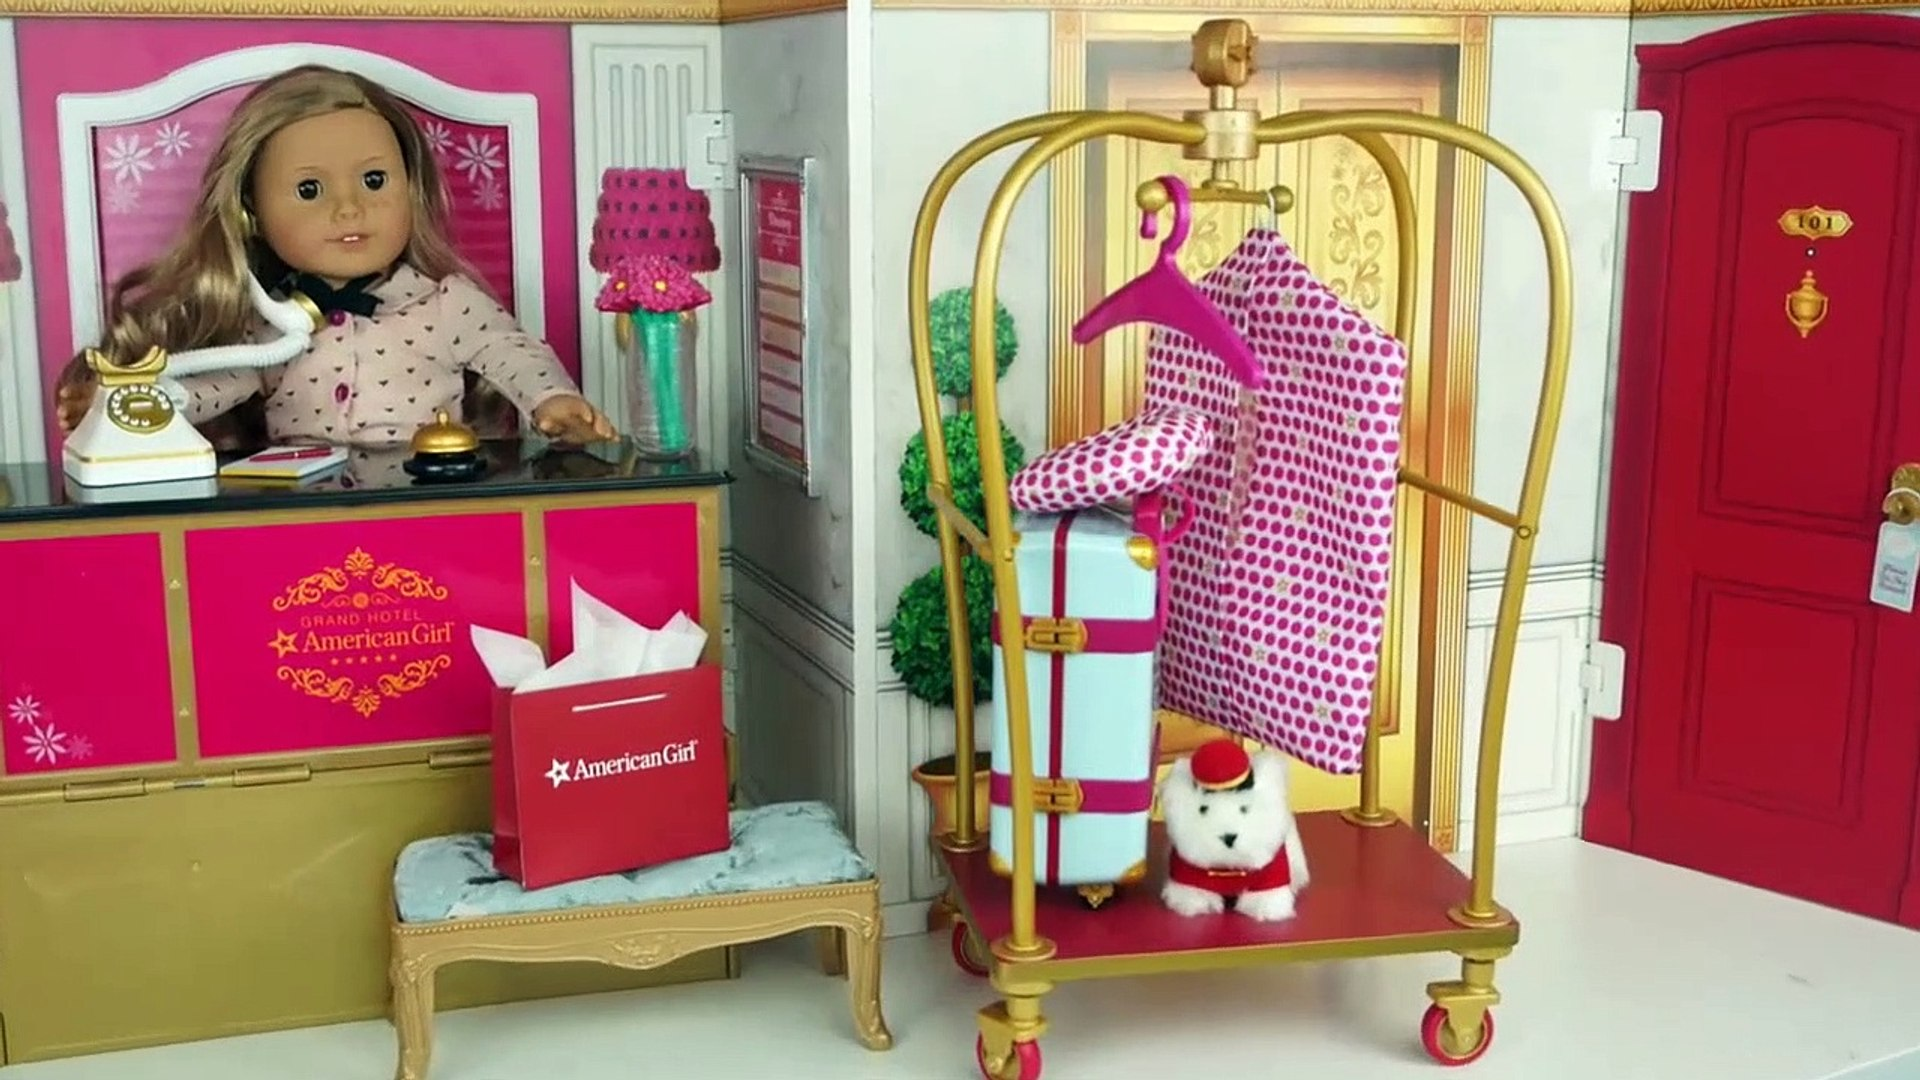 Toy Hotel Play Set -  Doll Bedroom Bathroom   American Girl Grand Hotel Full Collection